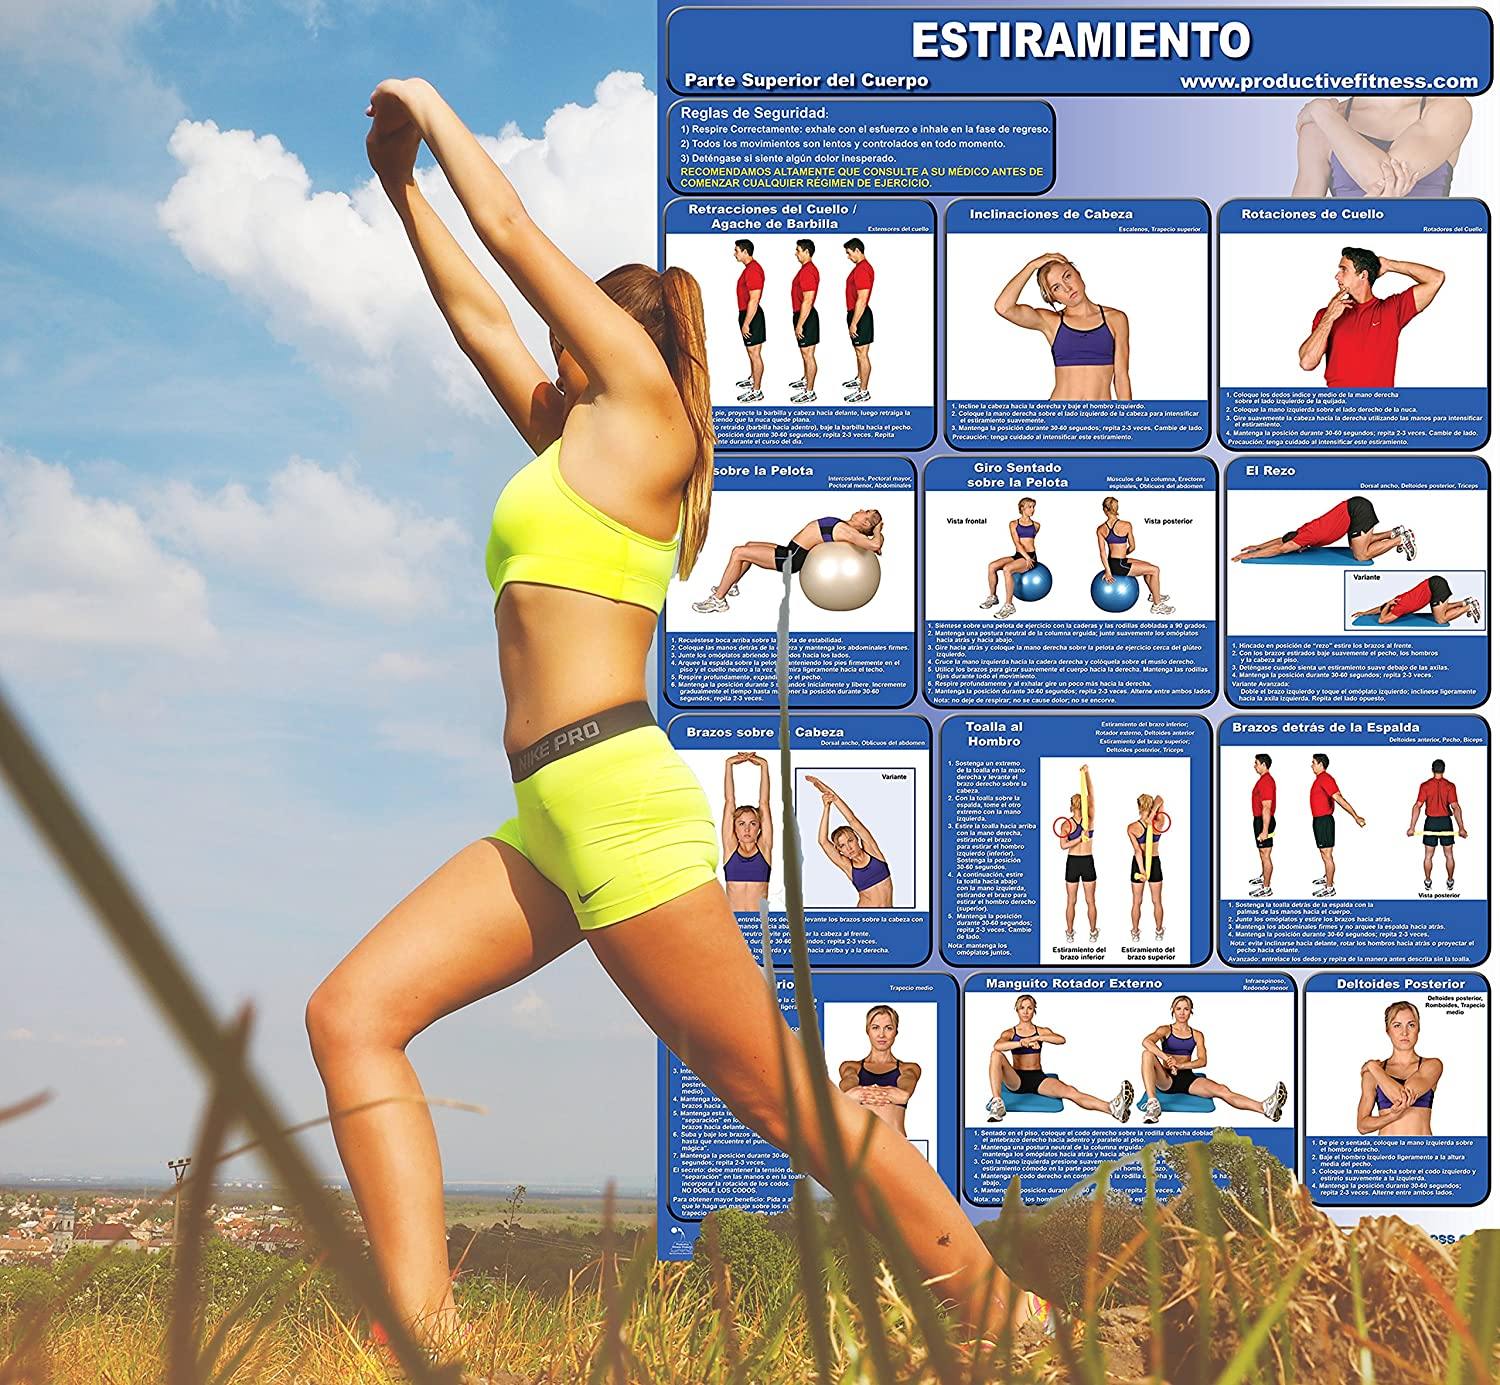 Amazon.com : Étirements Musculaires - Stretching Poster/Chart Set (Spanish Edition) ... : Sports & Outdoors